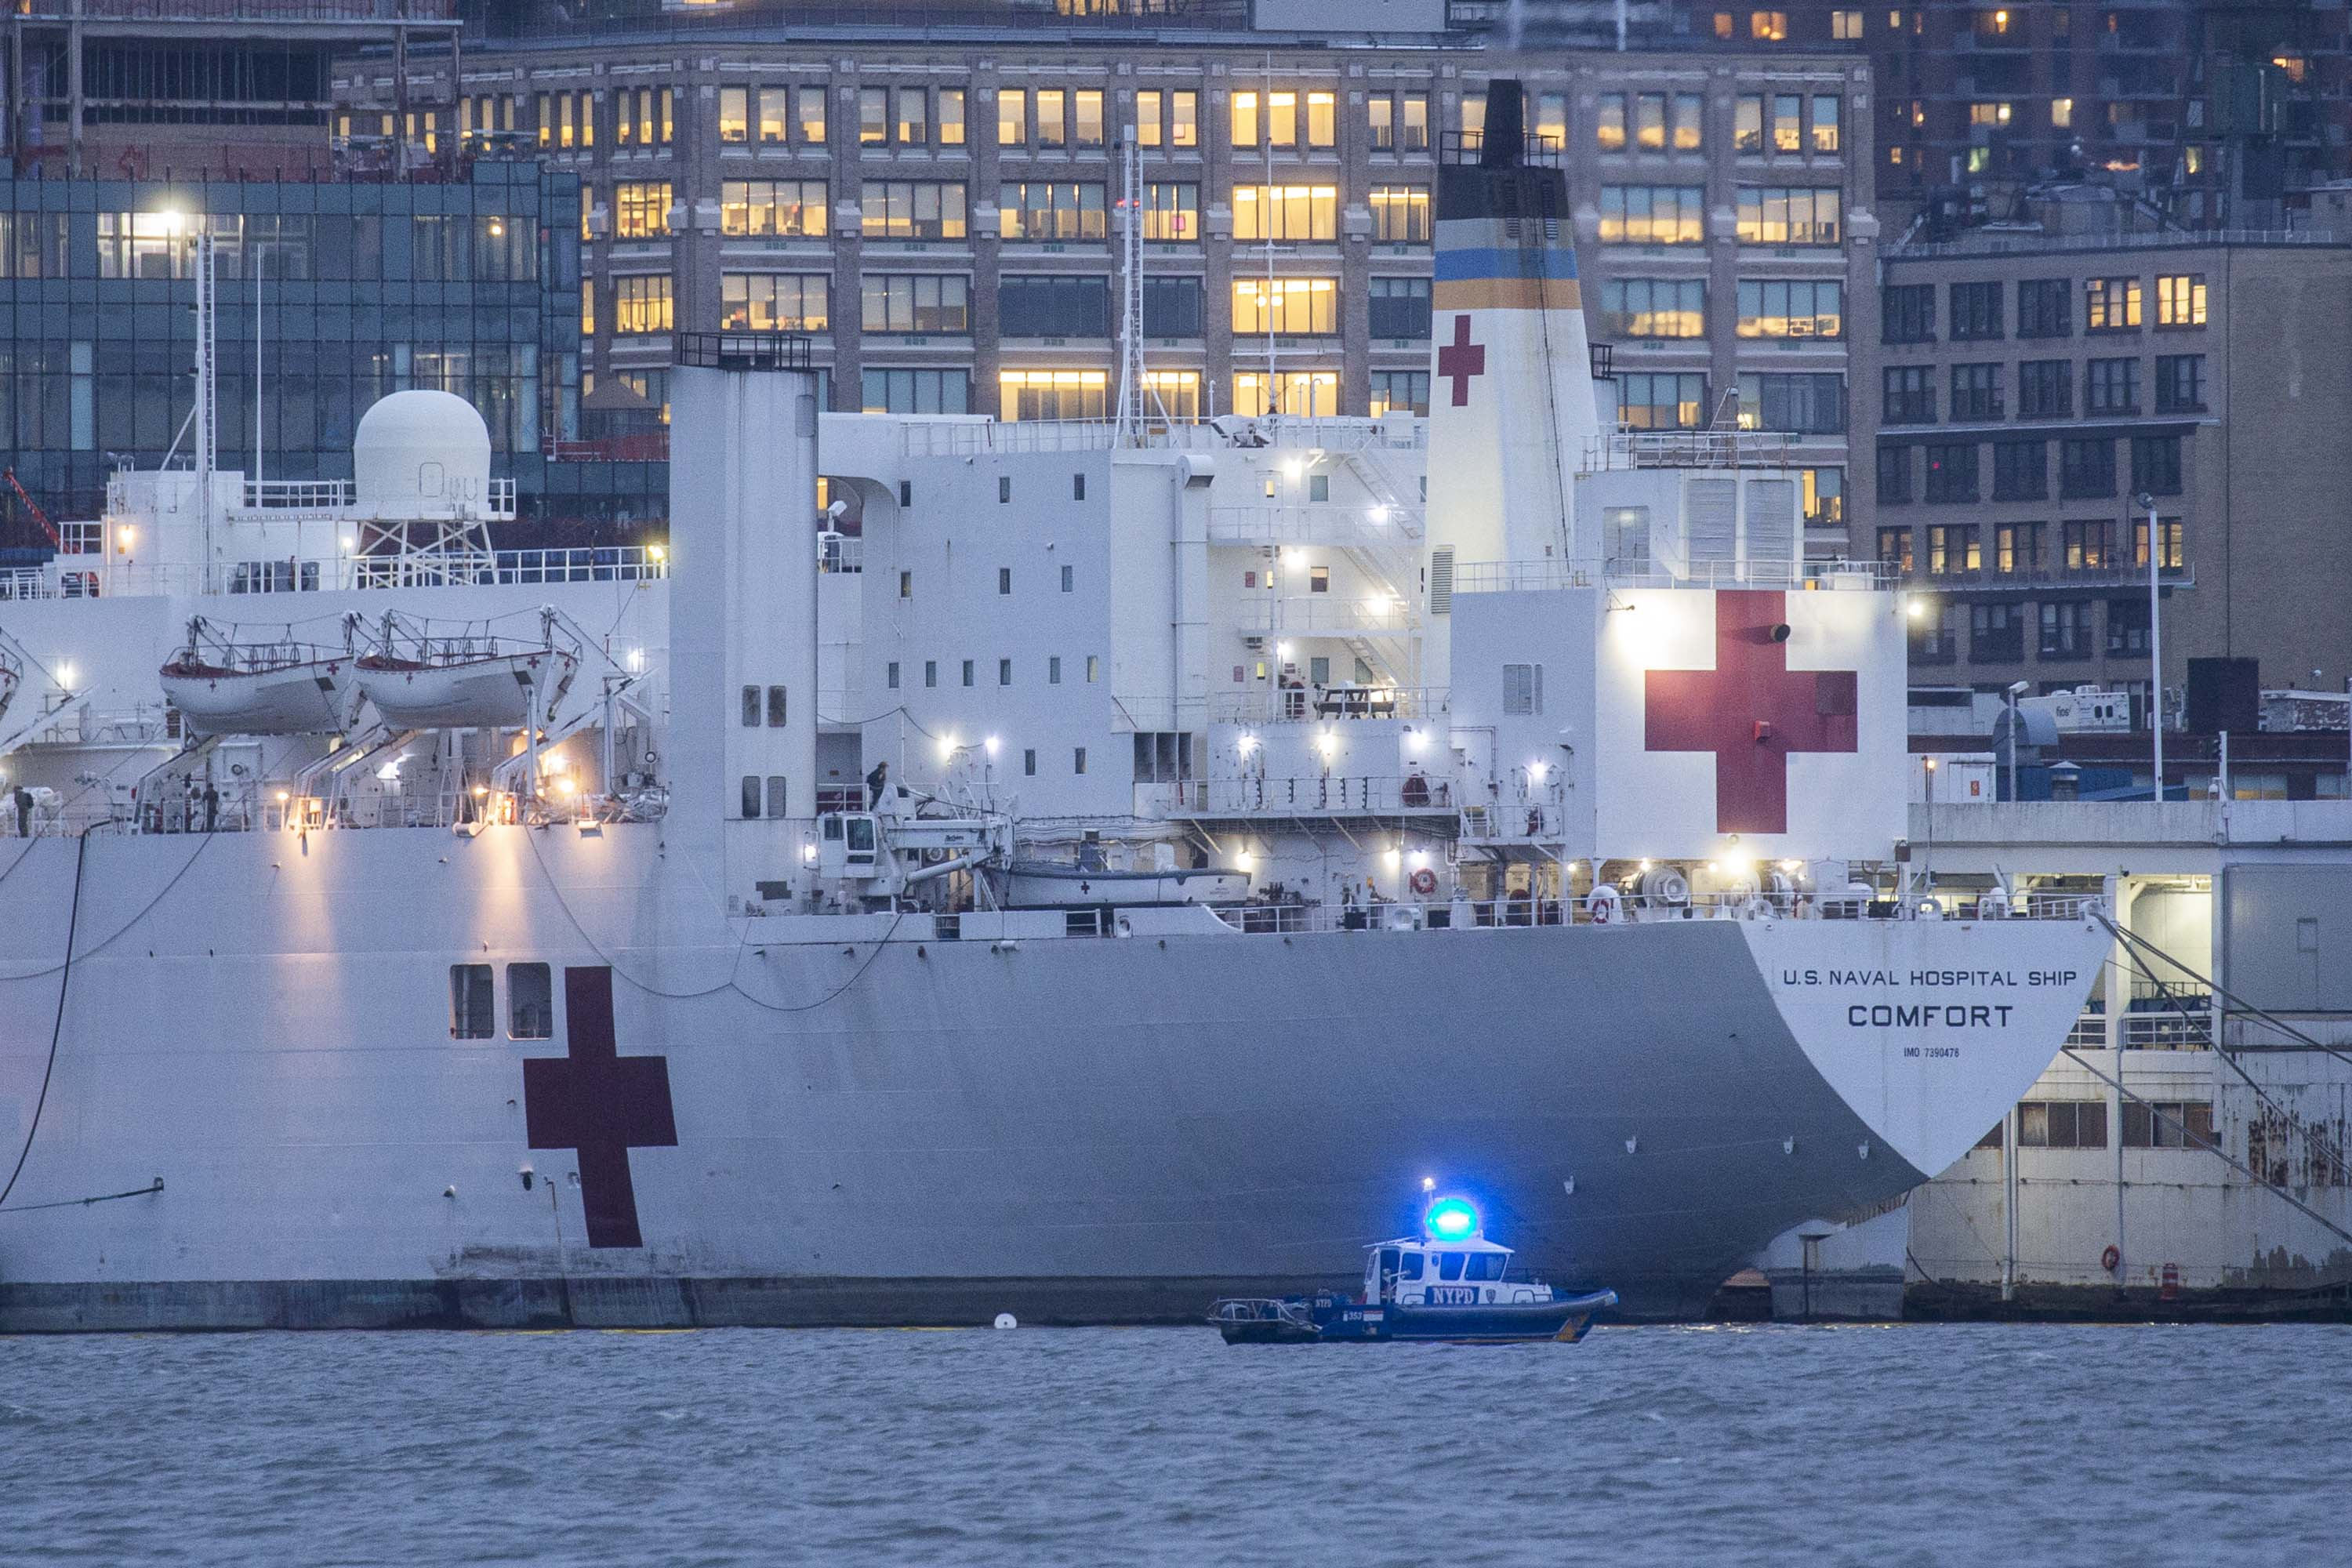 The USNS Comfort navy hospital ship is seen docked at Pier 90 in New York City on April 3.